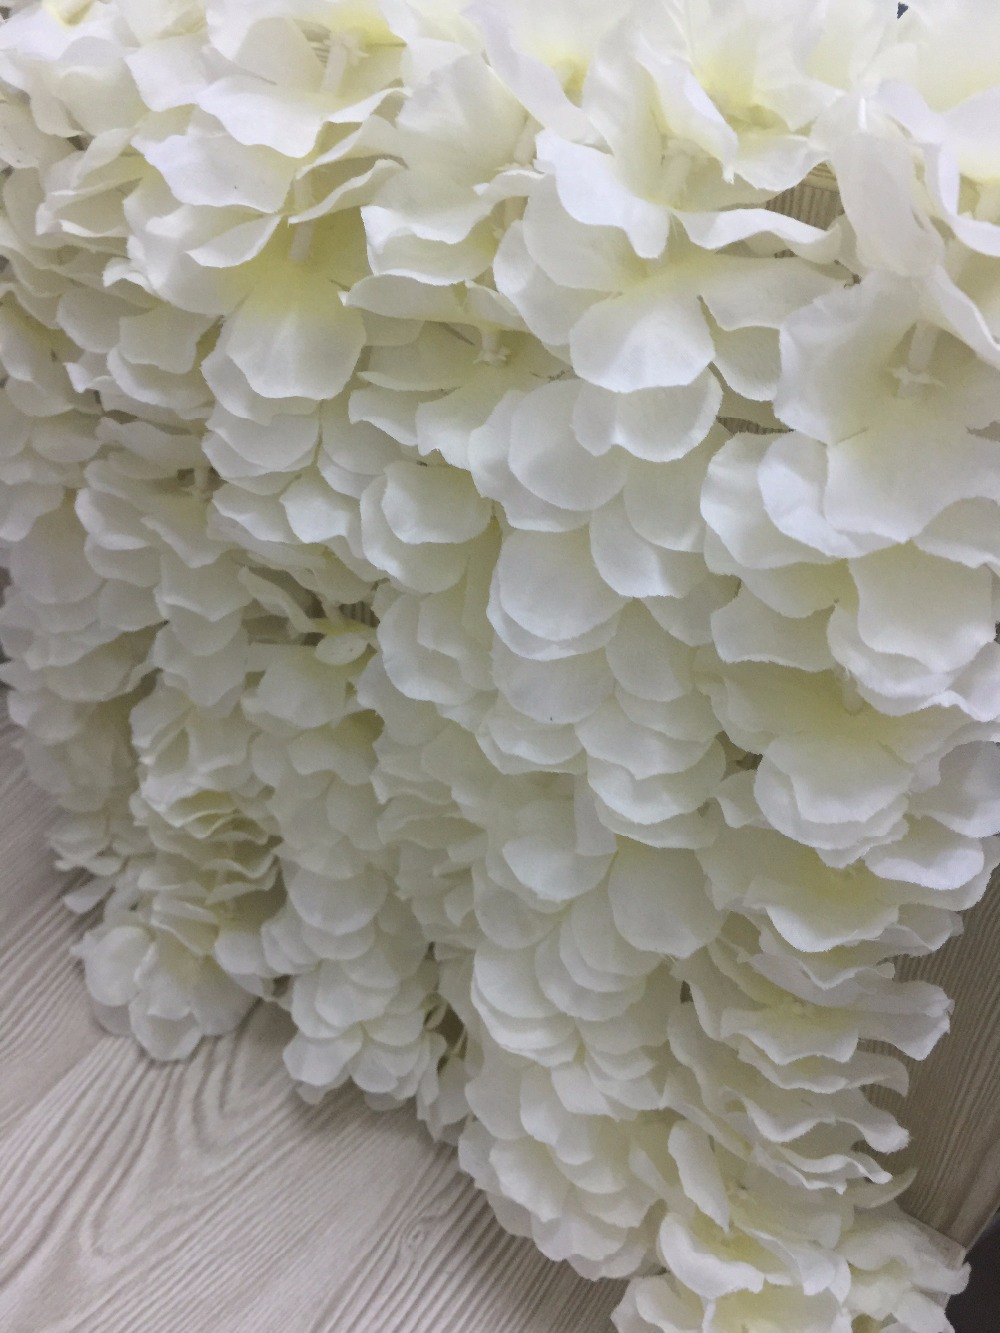 Apricot Encrypted Natural Vertical Silk Flower String For Wedding